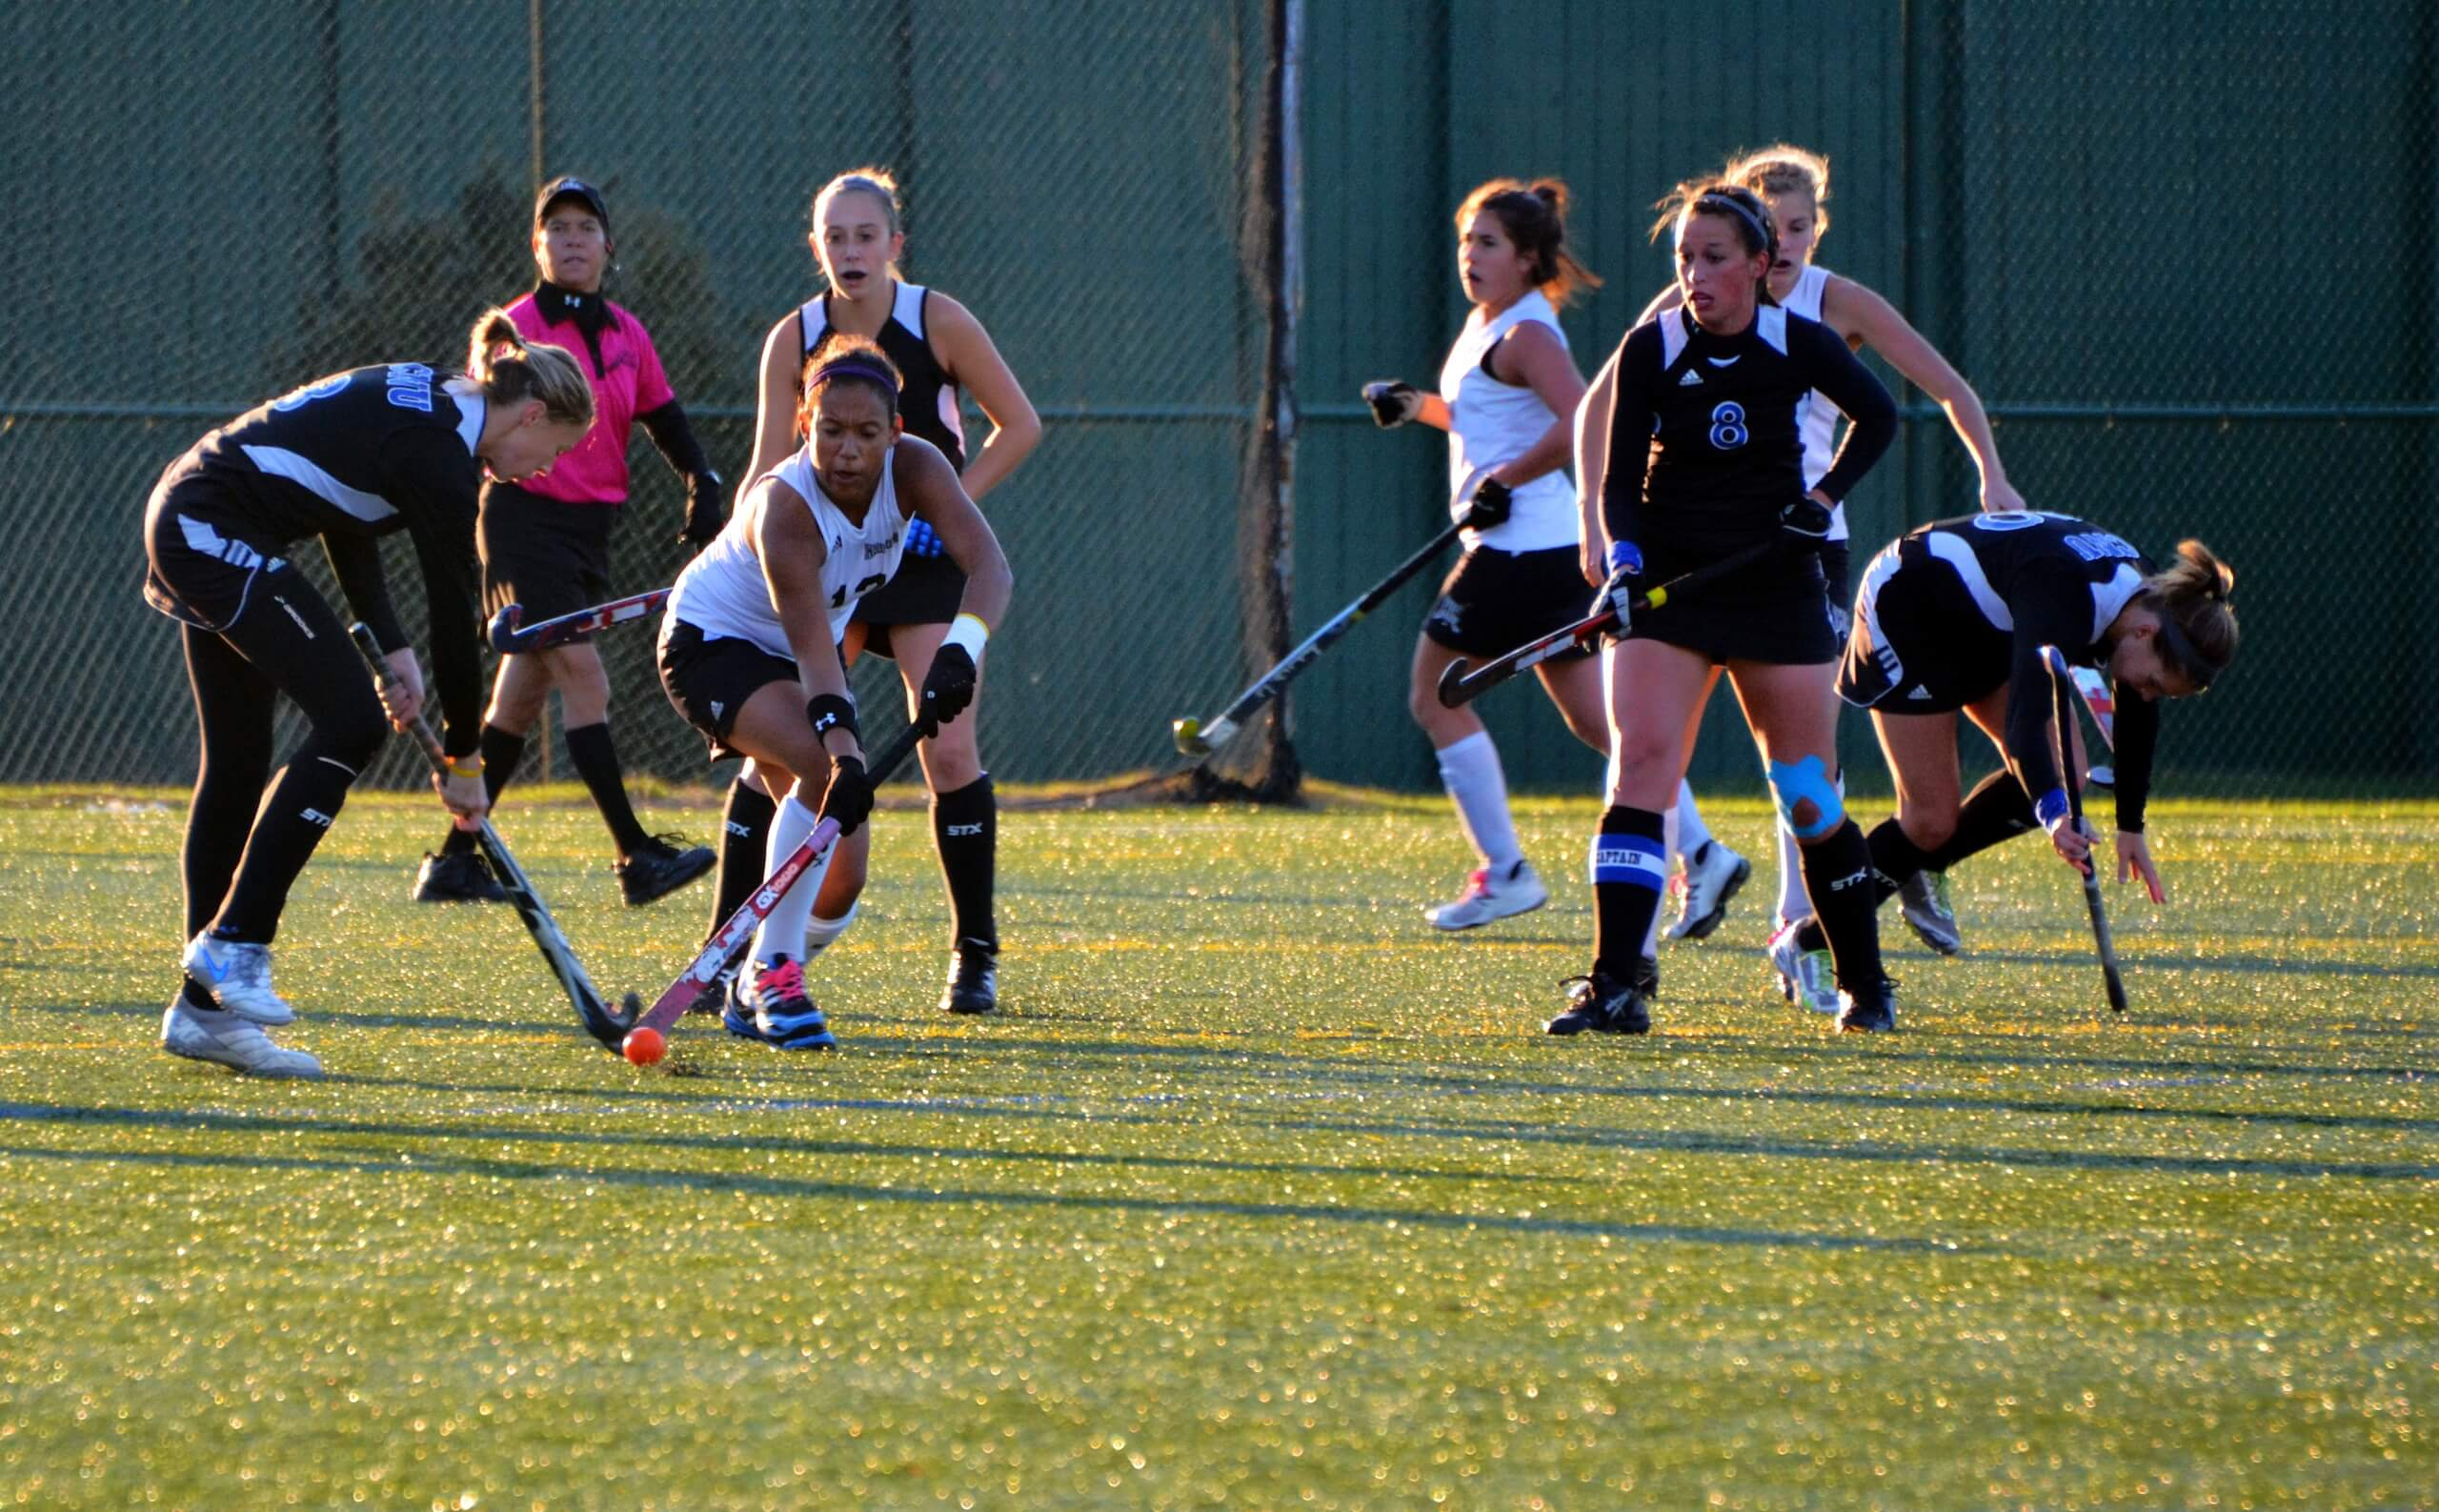 Girls on a hockey tour play a game of field hockey